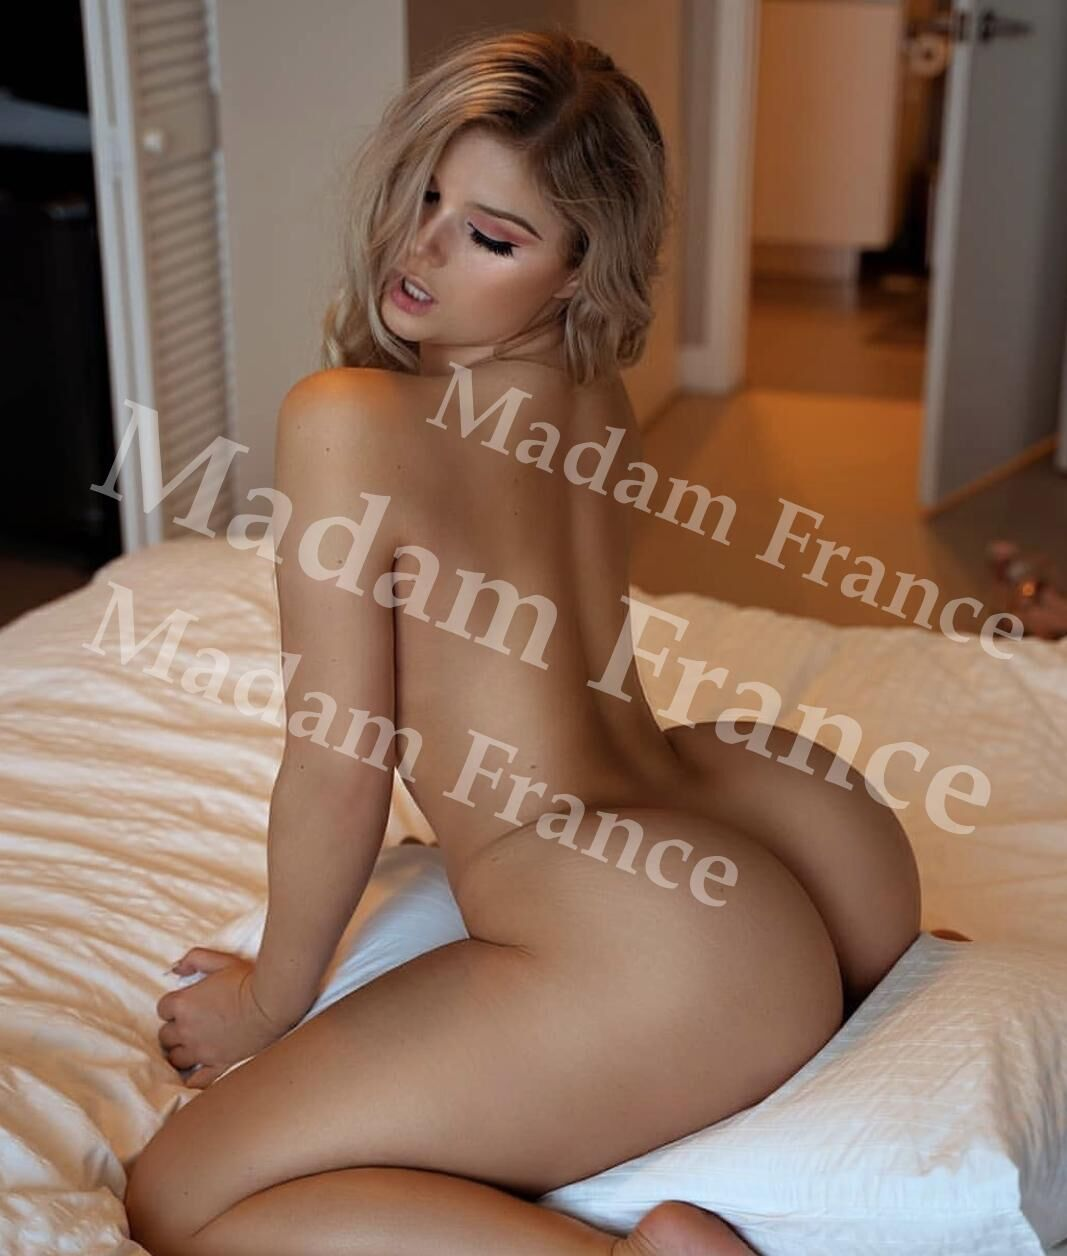 Arlene model on Madam France escort service